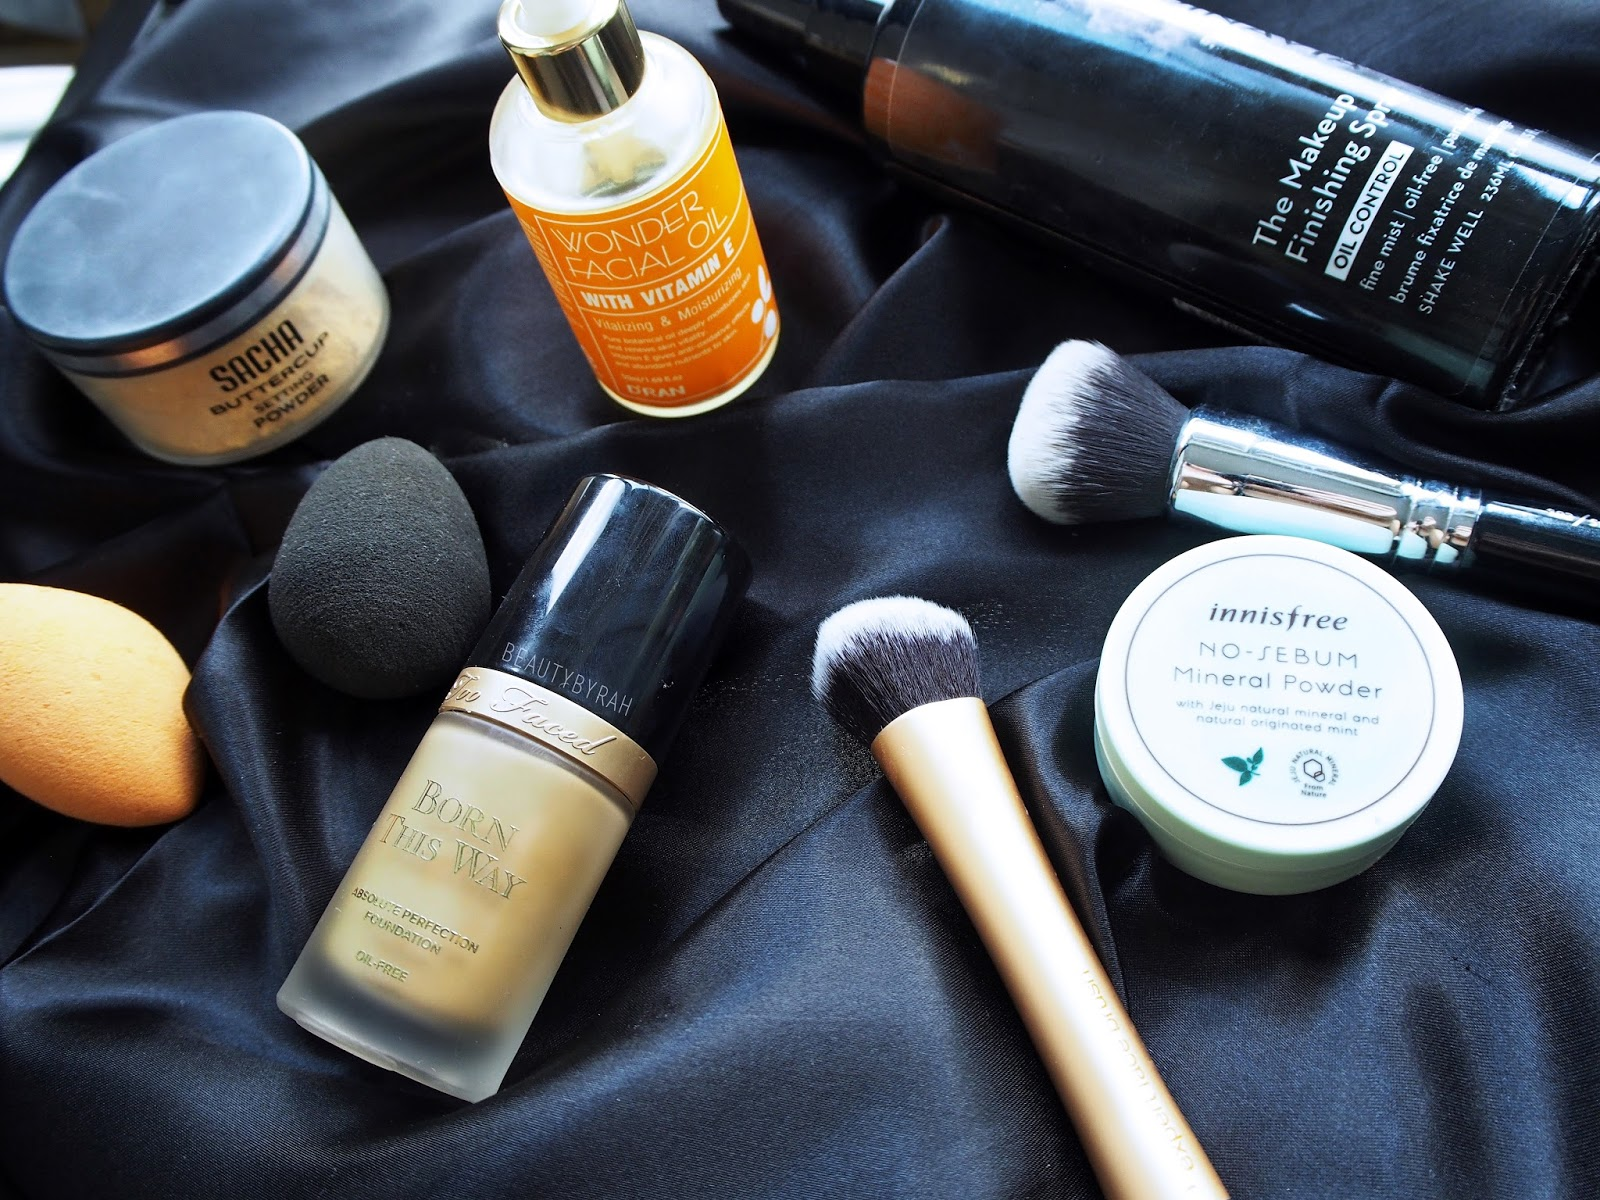 Tips for a flawless base makeup application